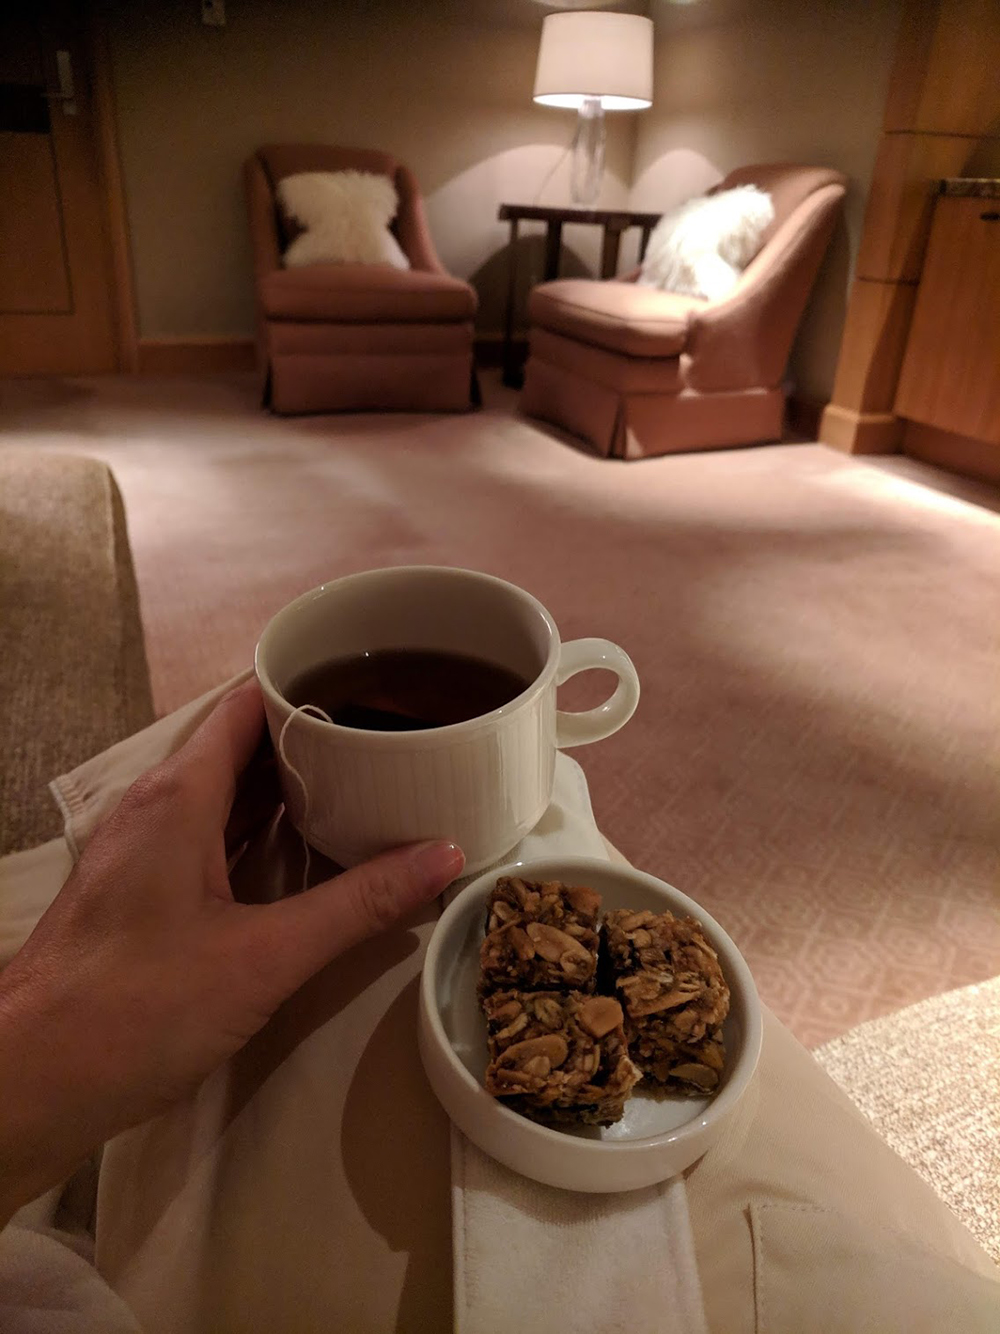 Sipping on Smith chai tea and snacking on house-made granola in the women's relaxation area.